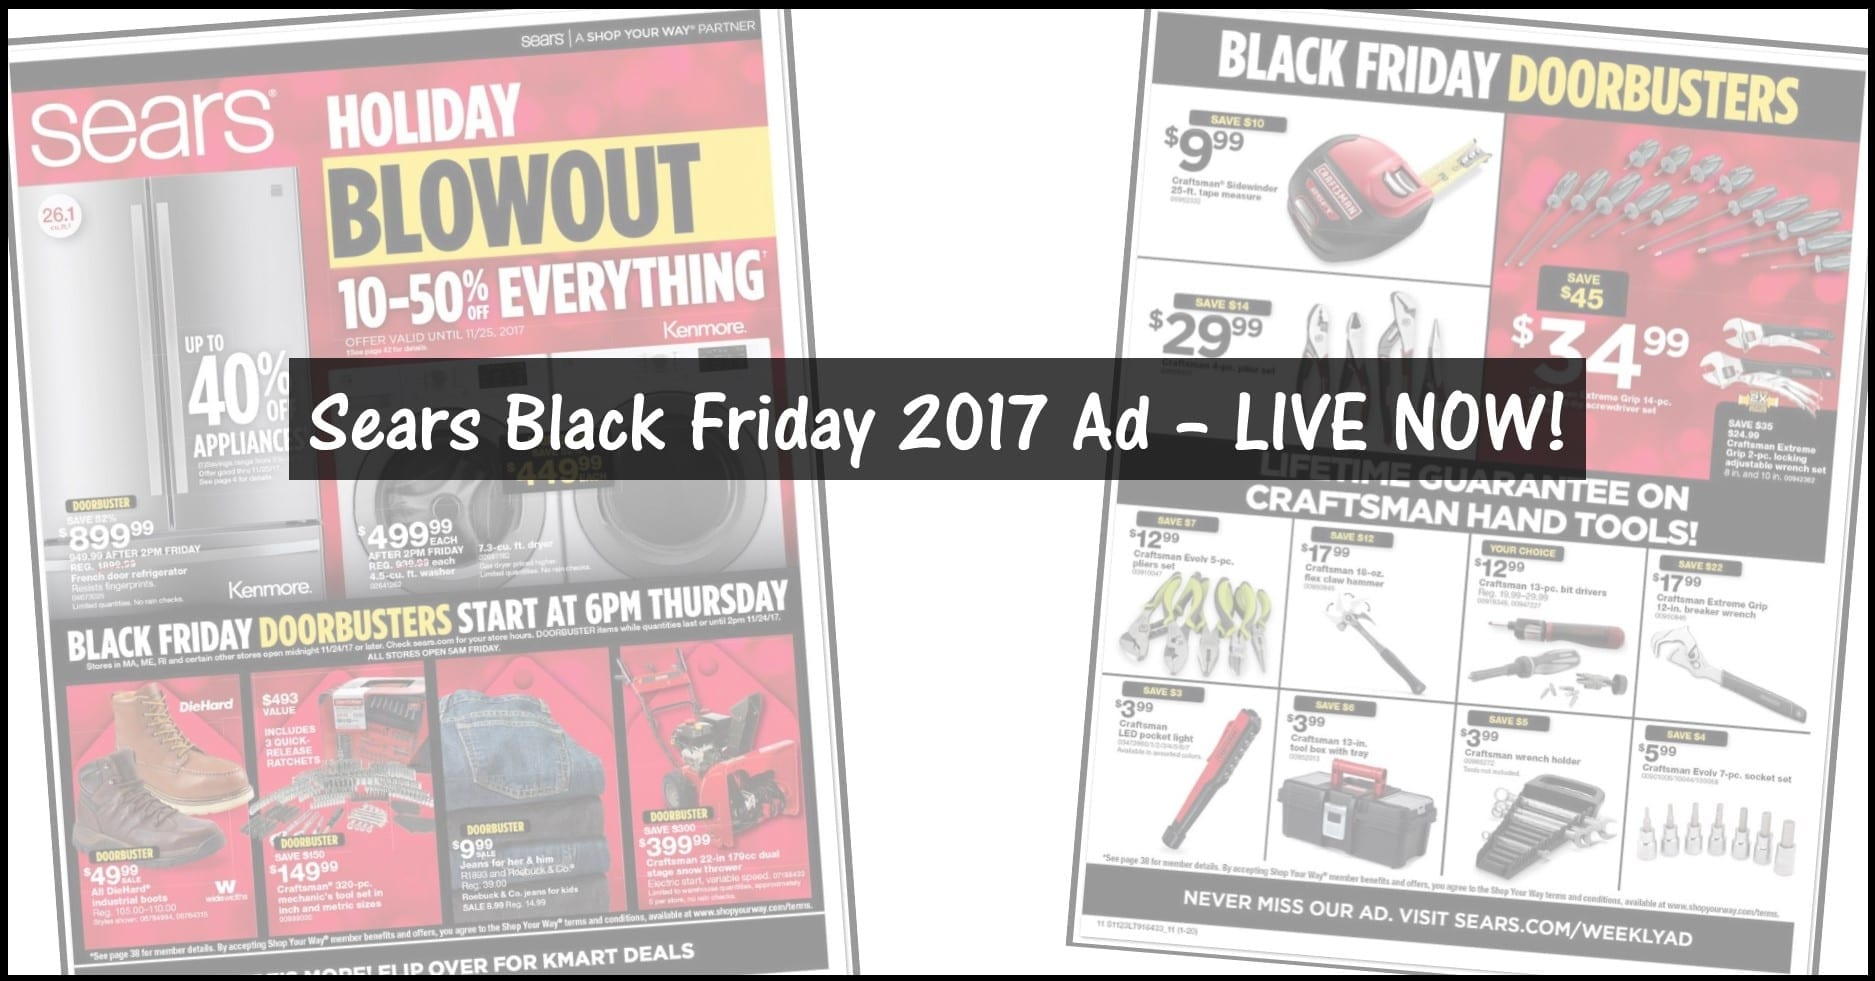 Sears Black Friday Ad 2017